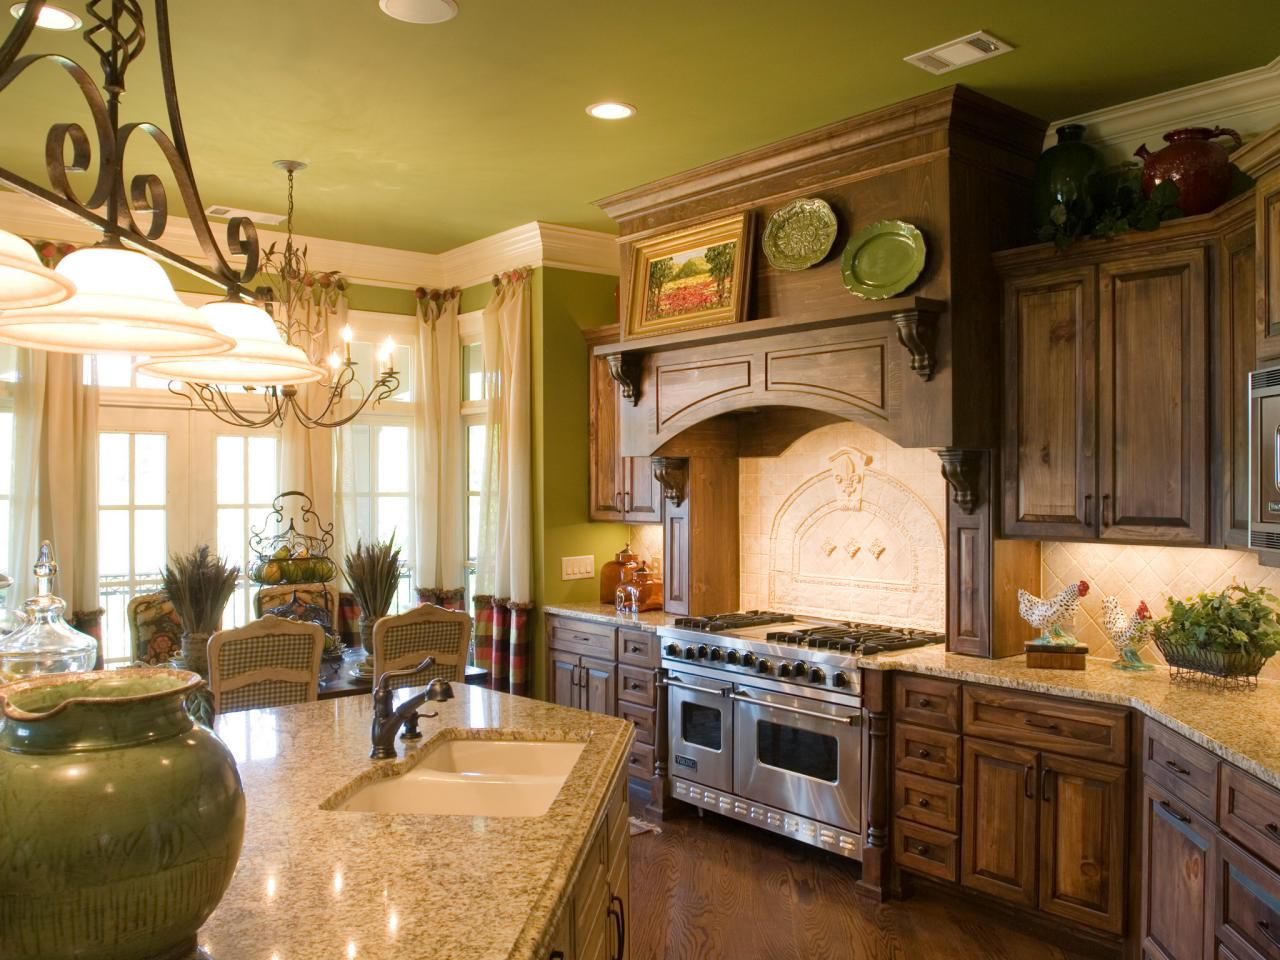 french country kitchen cabinets design photo - 3